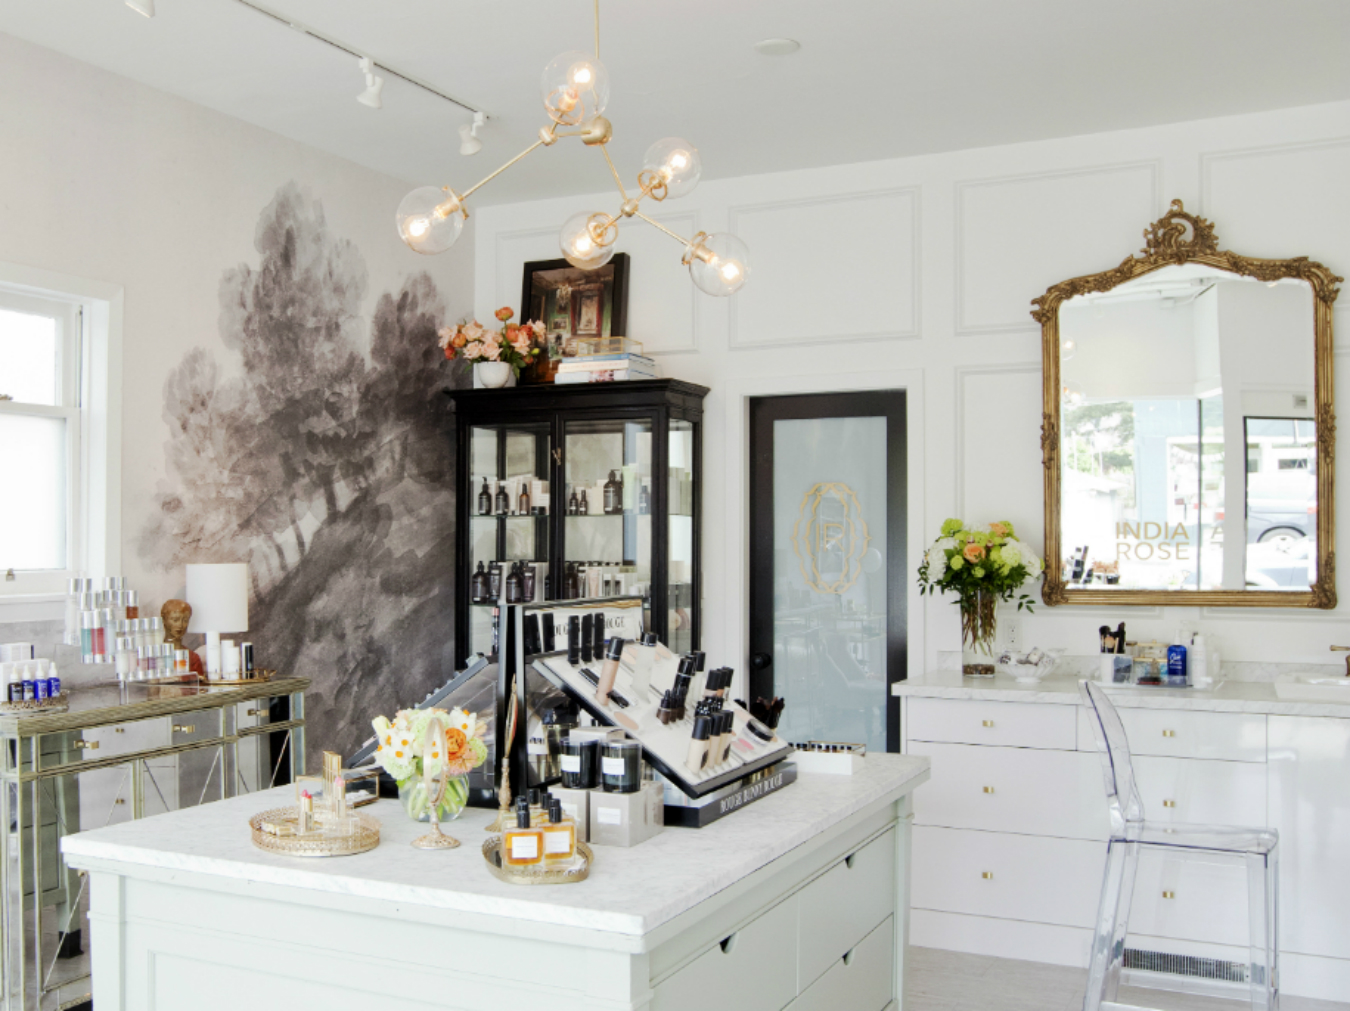 MONTE Blog: India Rose Cosmeticary